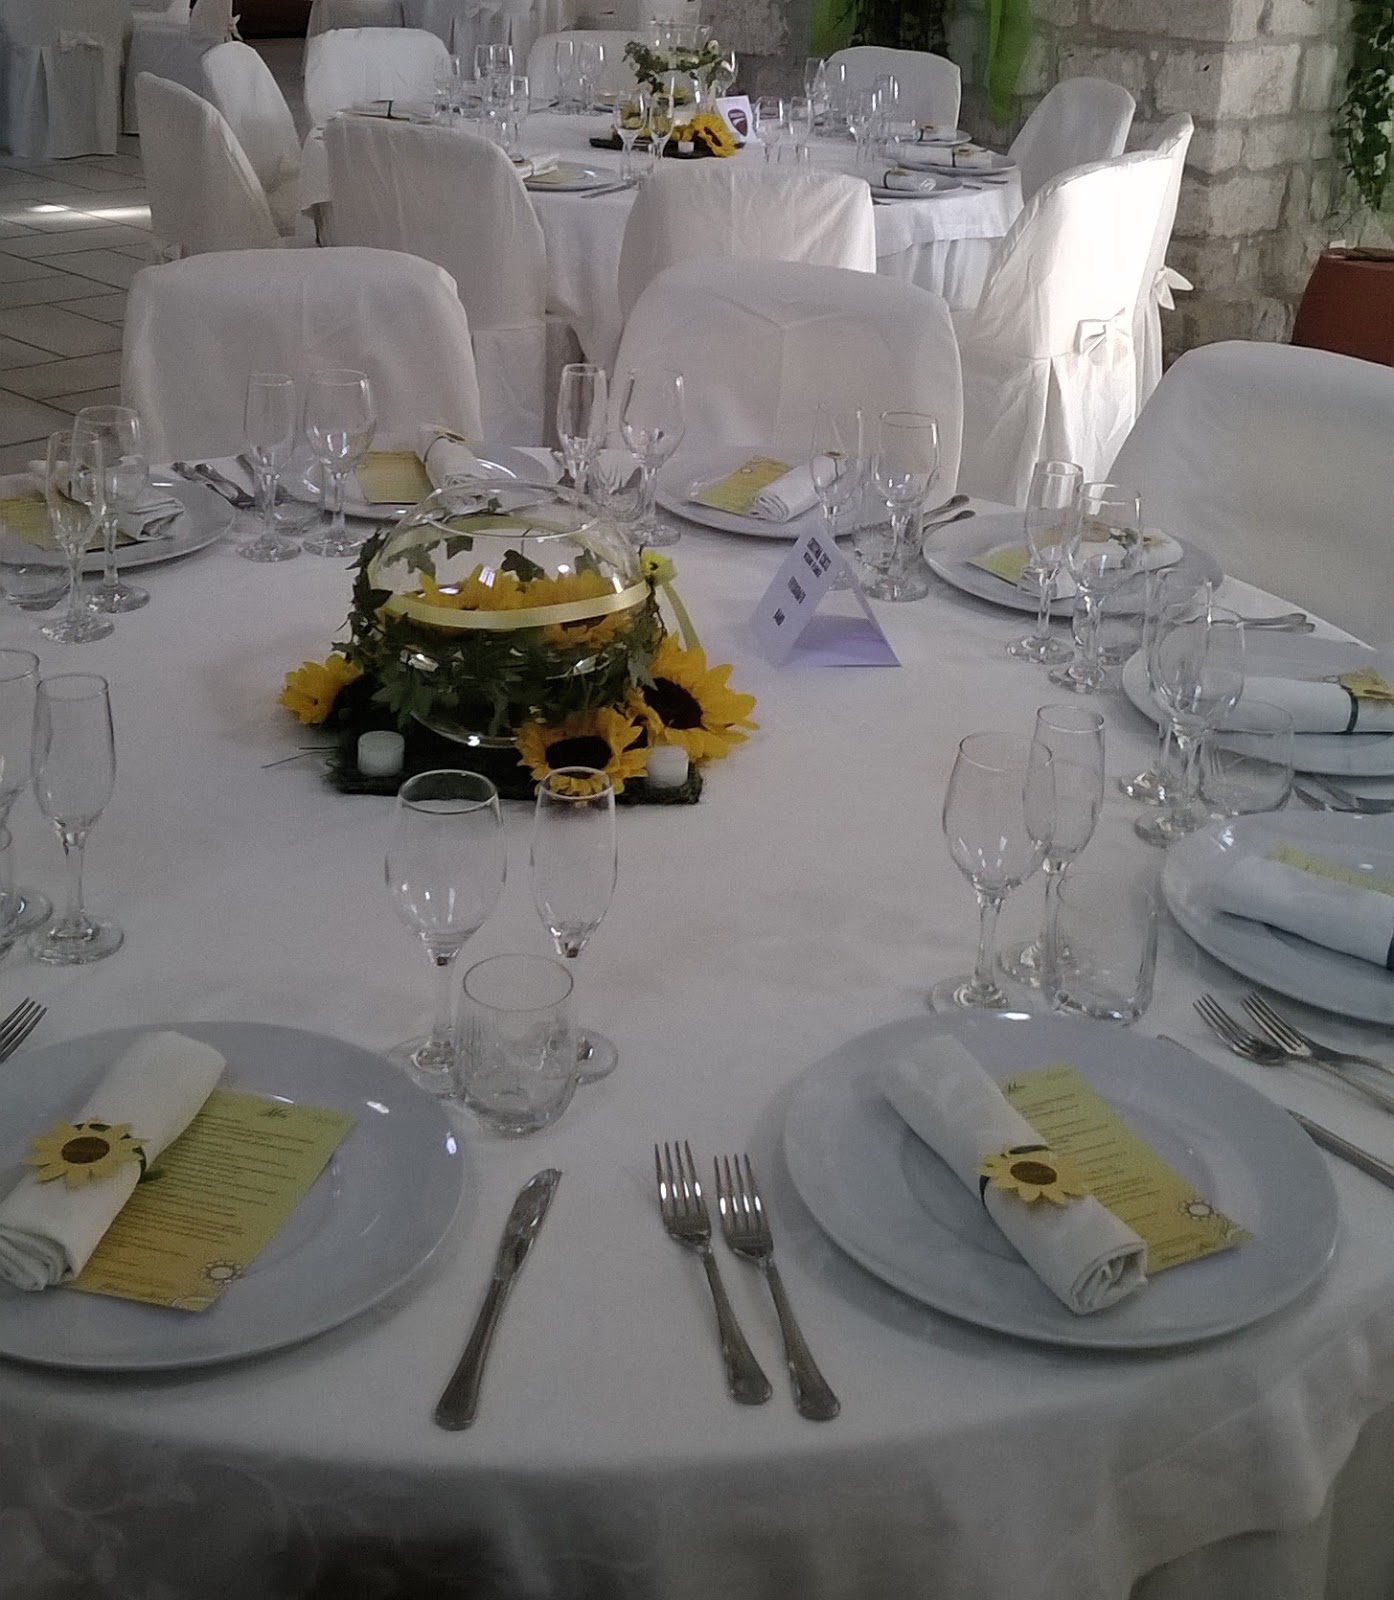 Wedding in the city novembre 2015 - Centrotavola girasoli ...